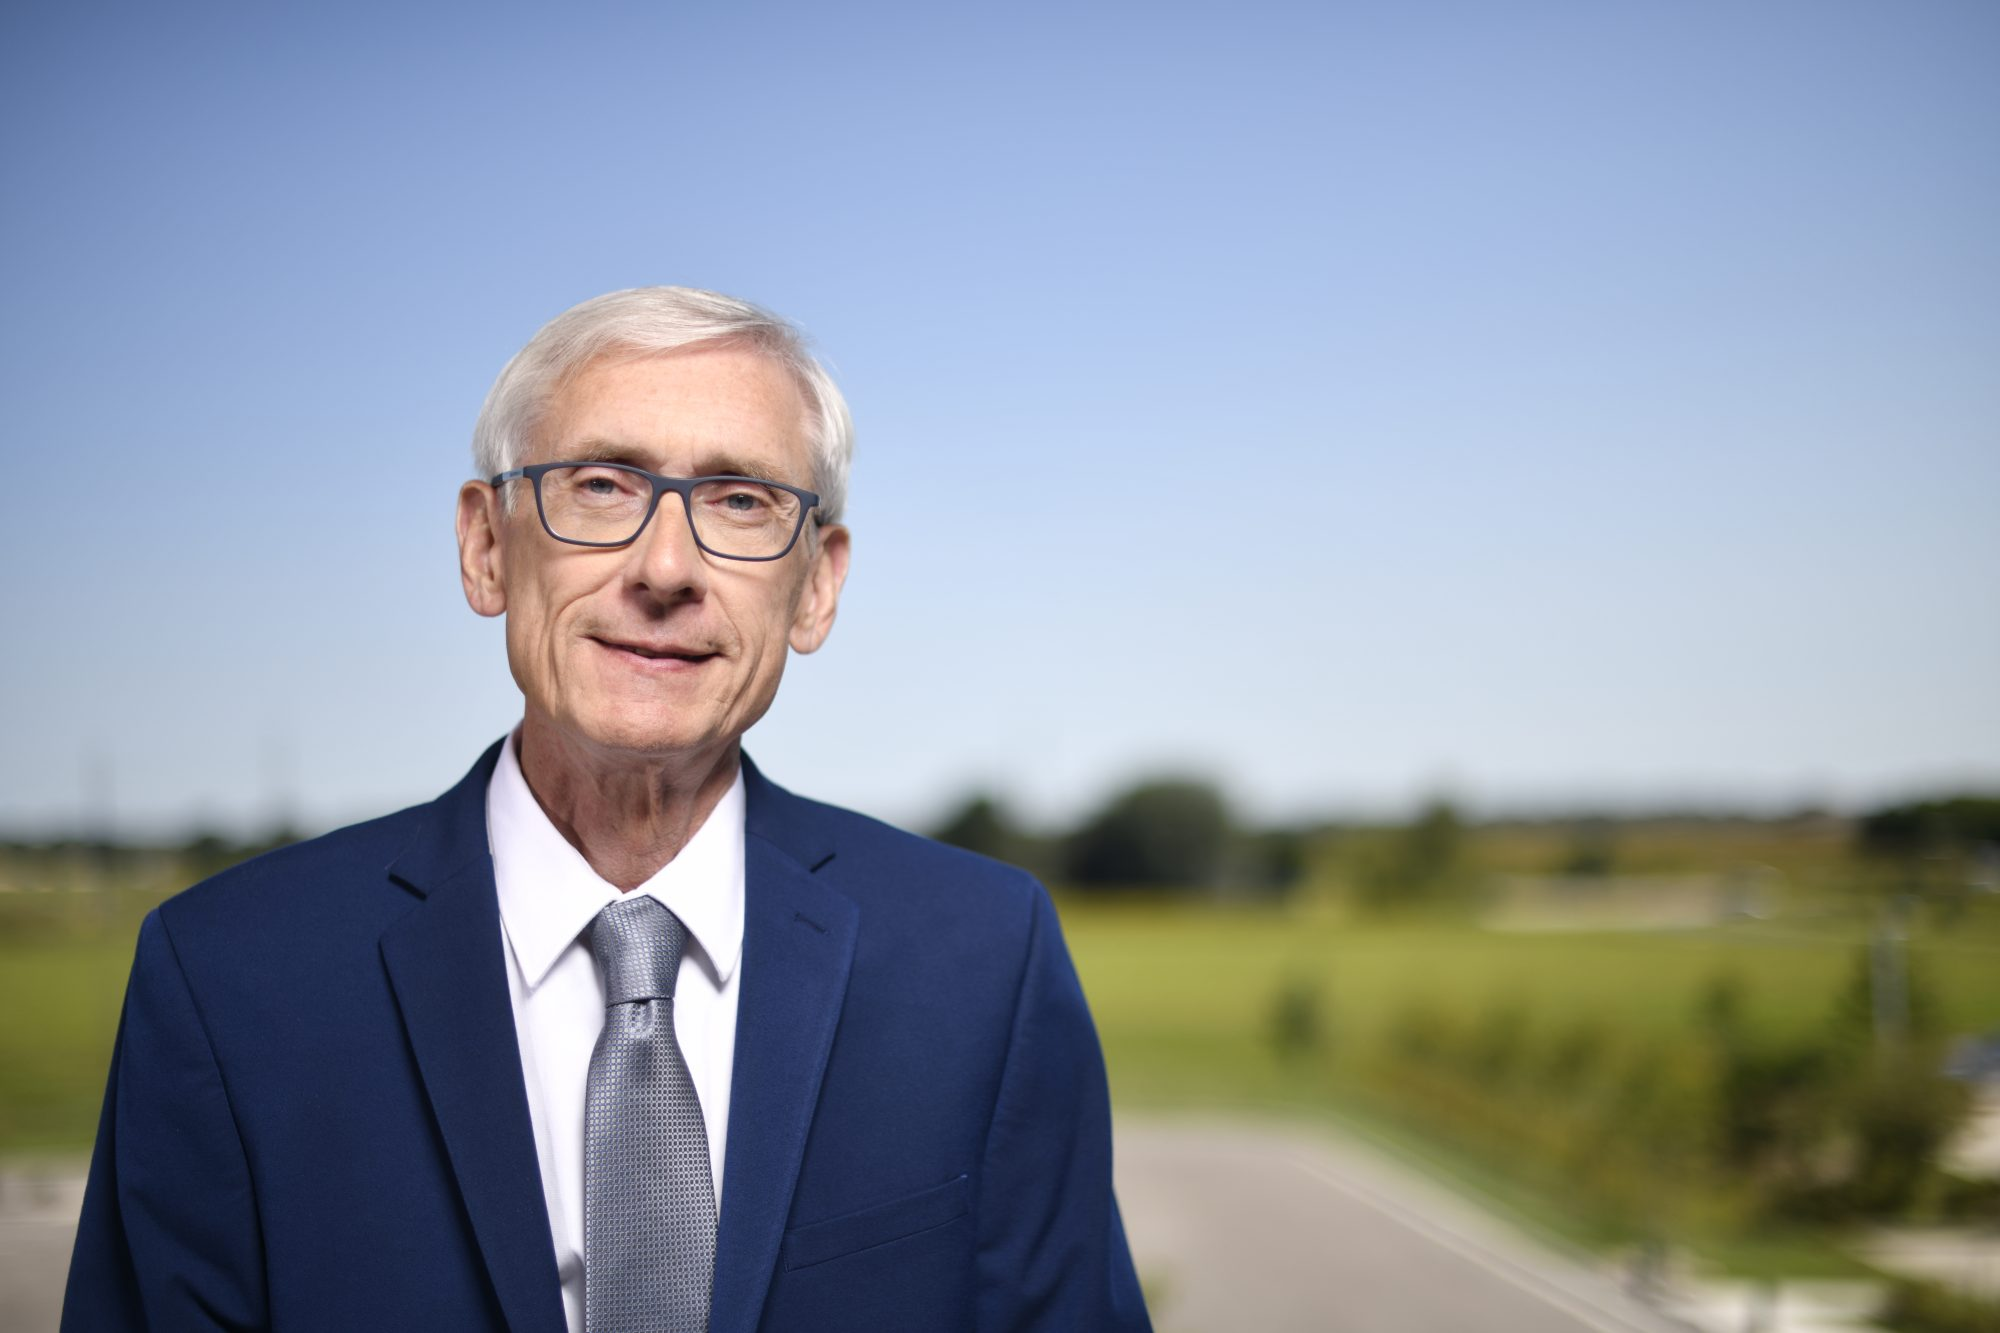 Gov. Evers Announces Rainbow Pride Flag to Fly Over State Capitol Honoring Pride Month